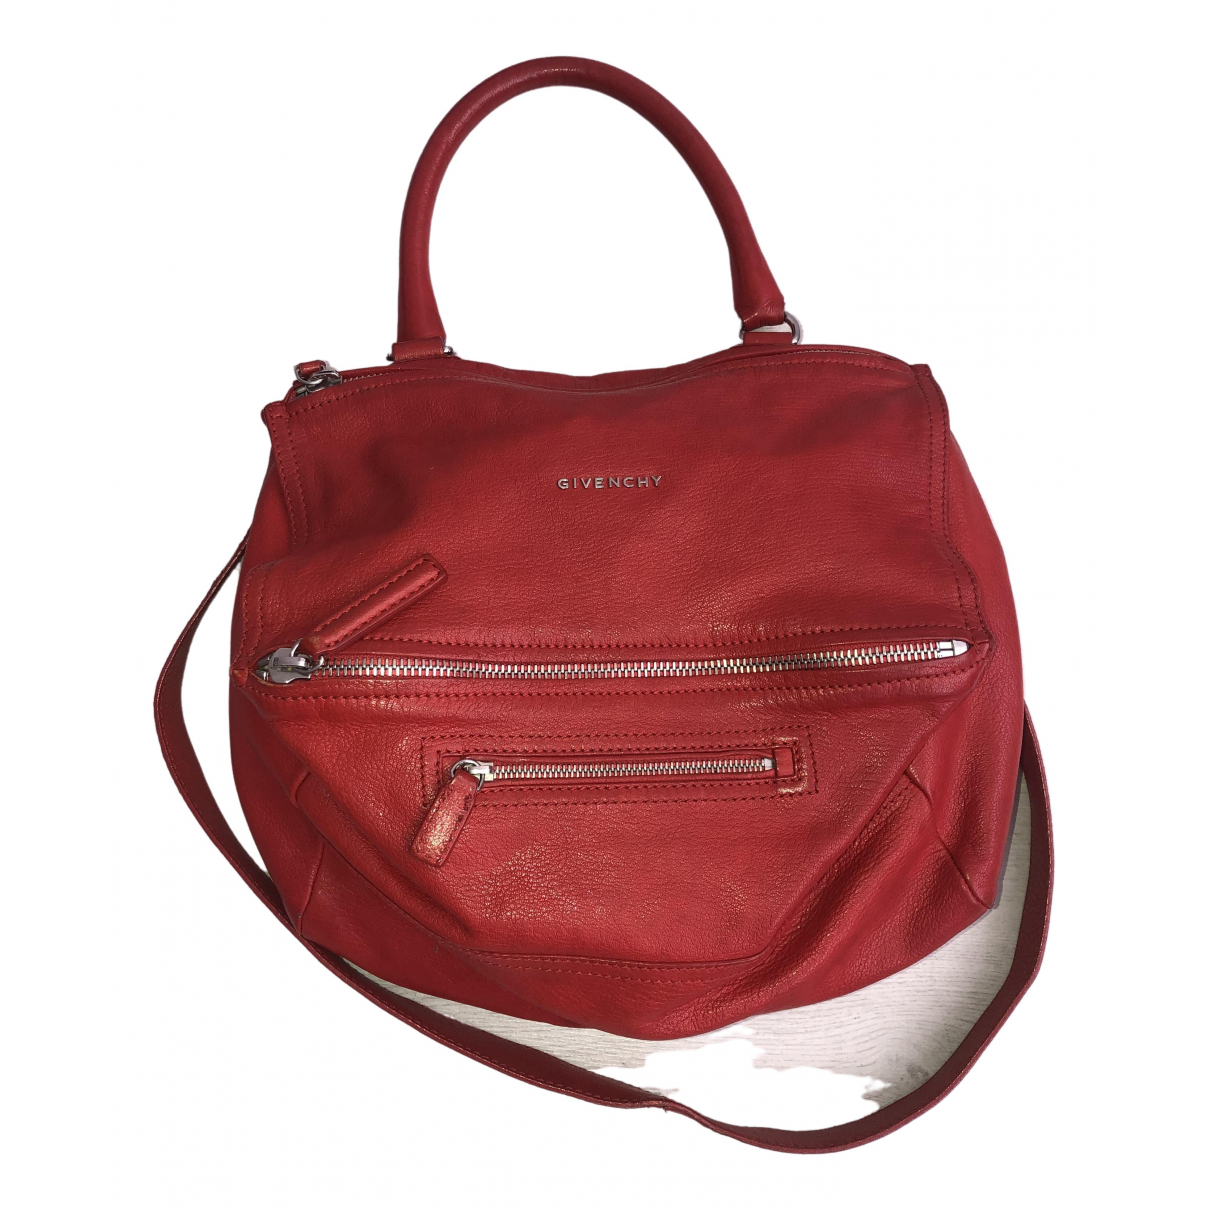 Givenchy Pandora Red Leather handbag for Women \N